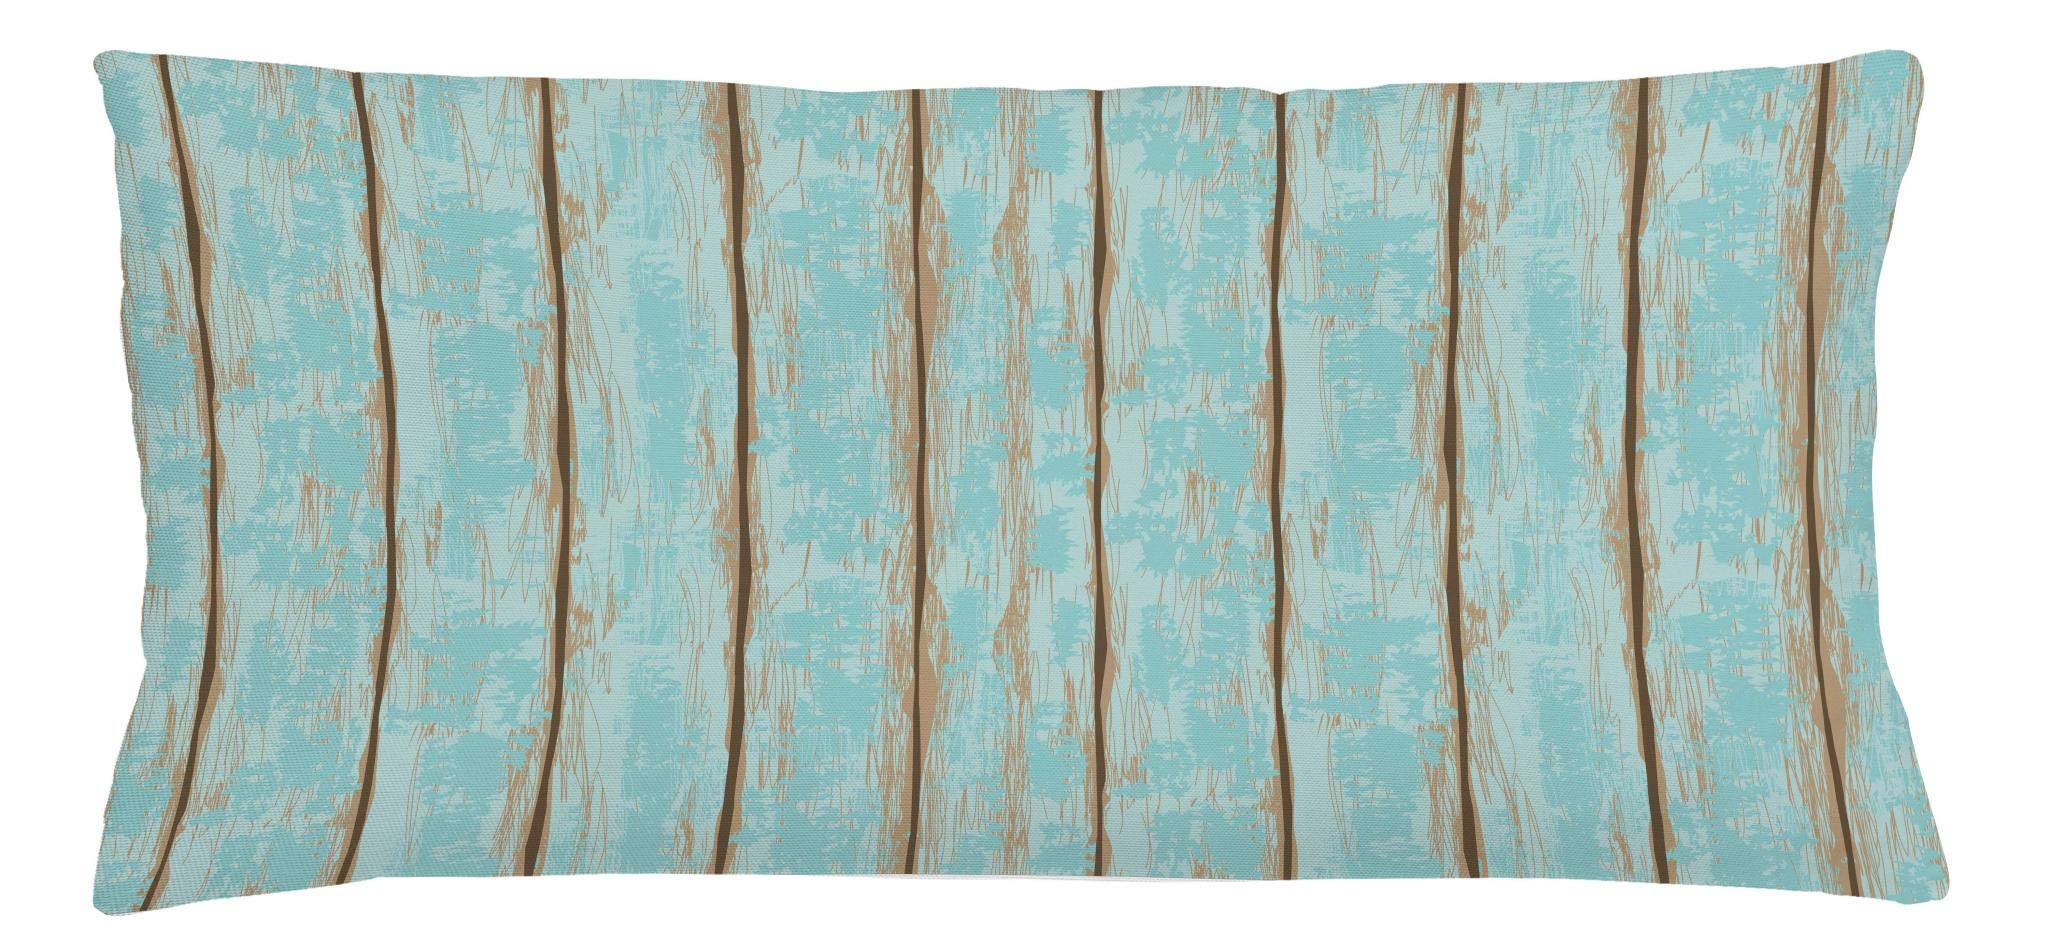 Lunarable Wood Print Throw Pillow Cushion Cover, Old Fashioned Weathered Rustic Planks Summer Cottage Beach Coastal Theme, Decorative Square Accent Pillow Case, 36 X 16 Inches, Pale Blue Tan by Lunarable (Image #1)